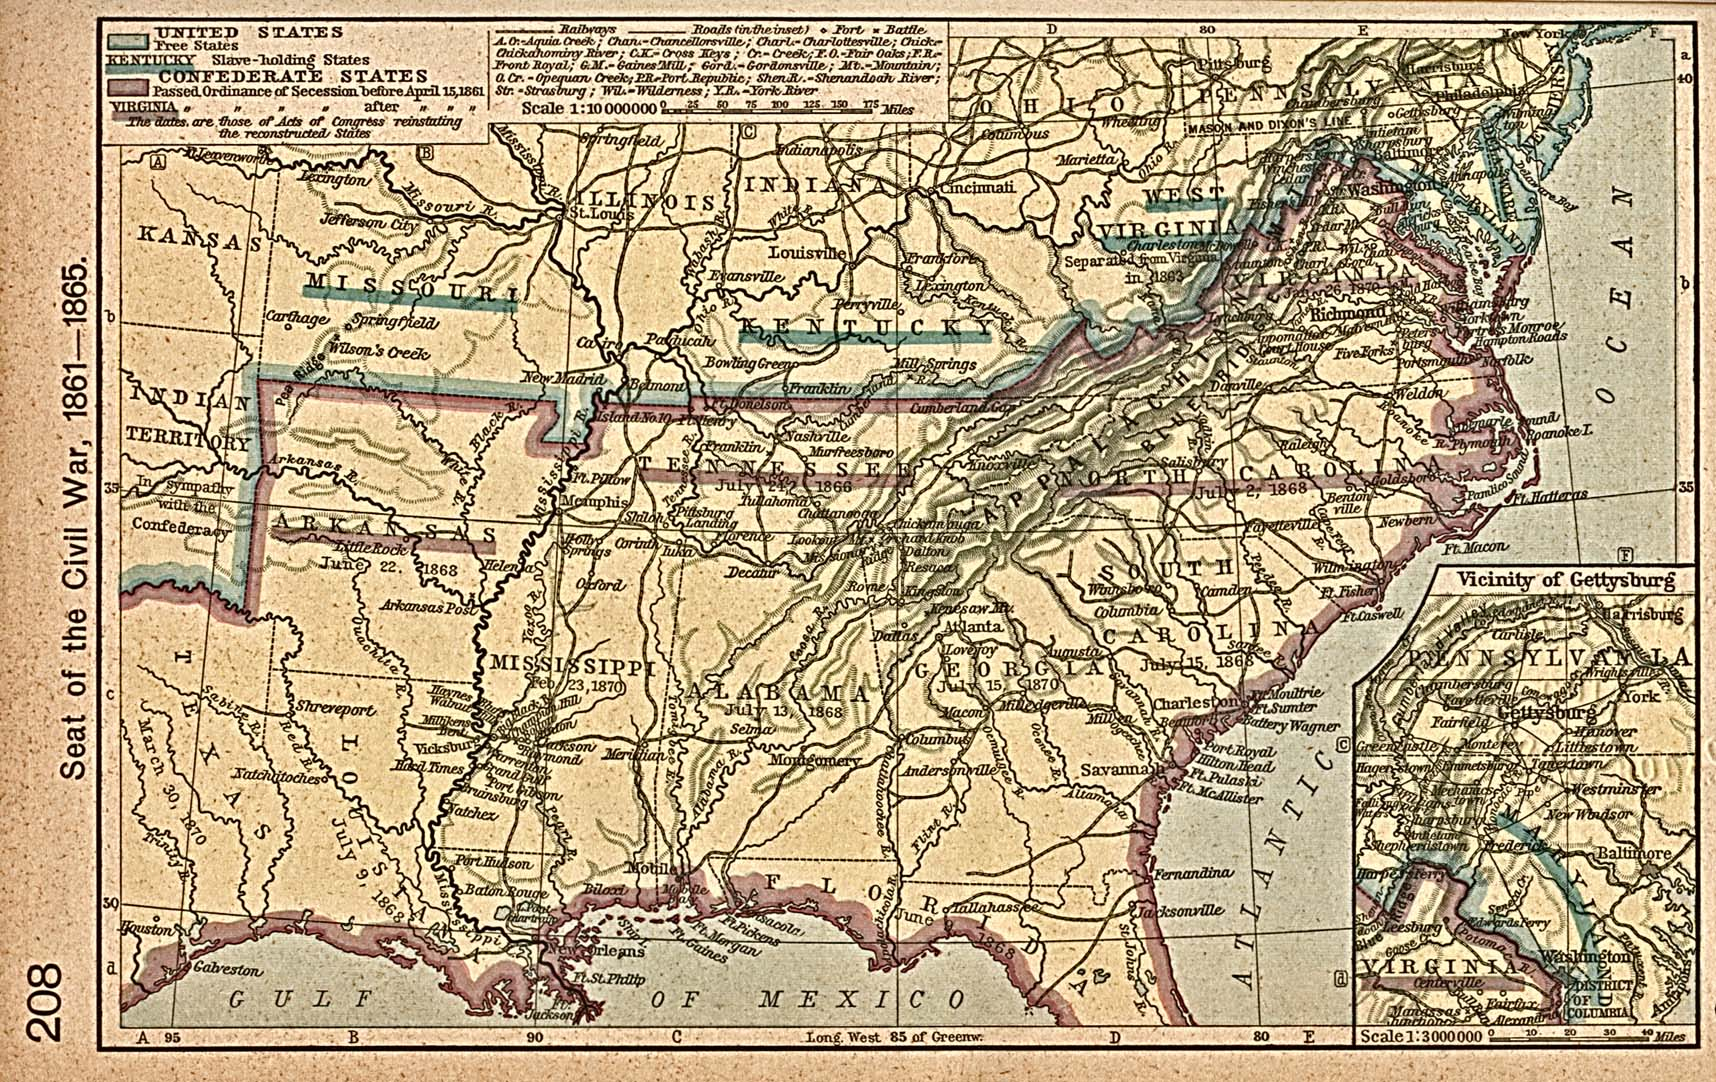 FileCivil War Shepherdjpg Wikimedia Commons - Us map civil war battles